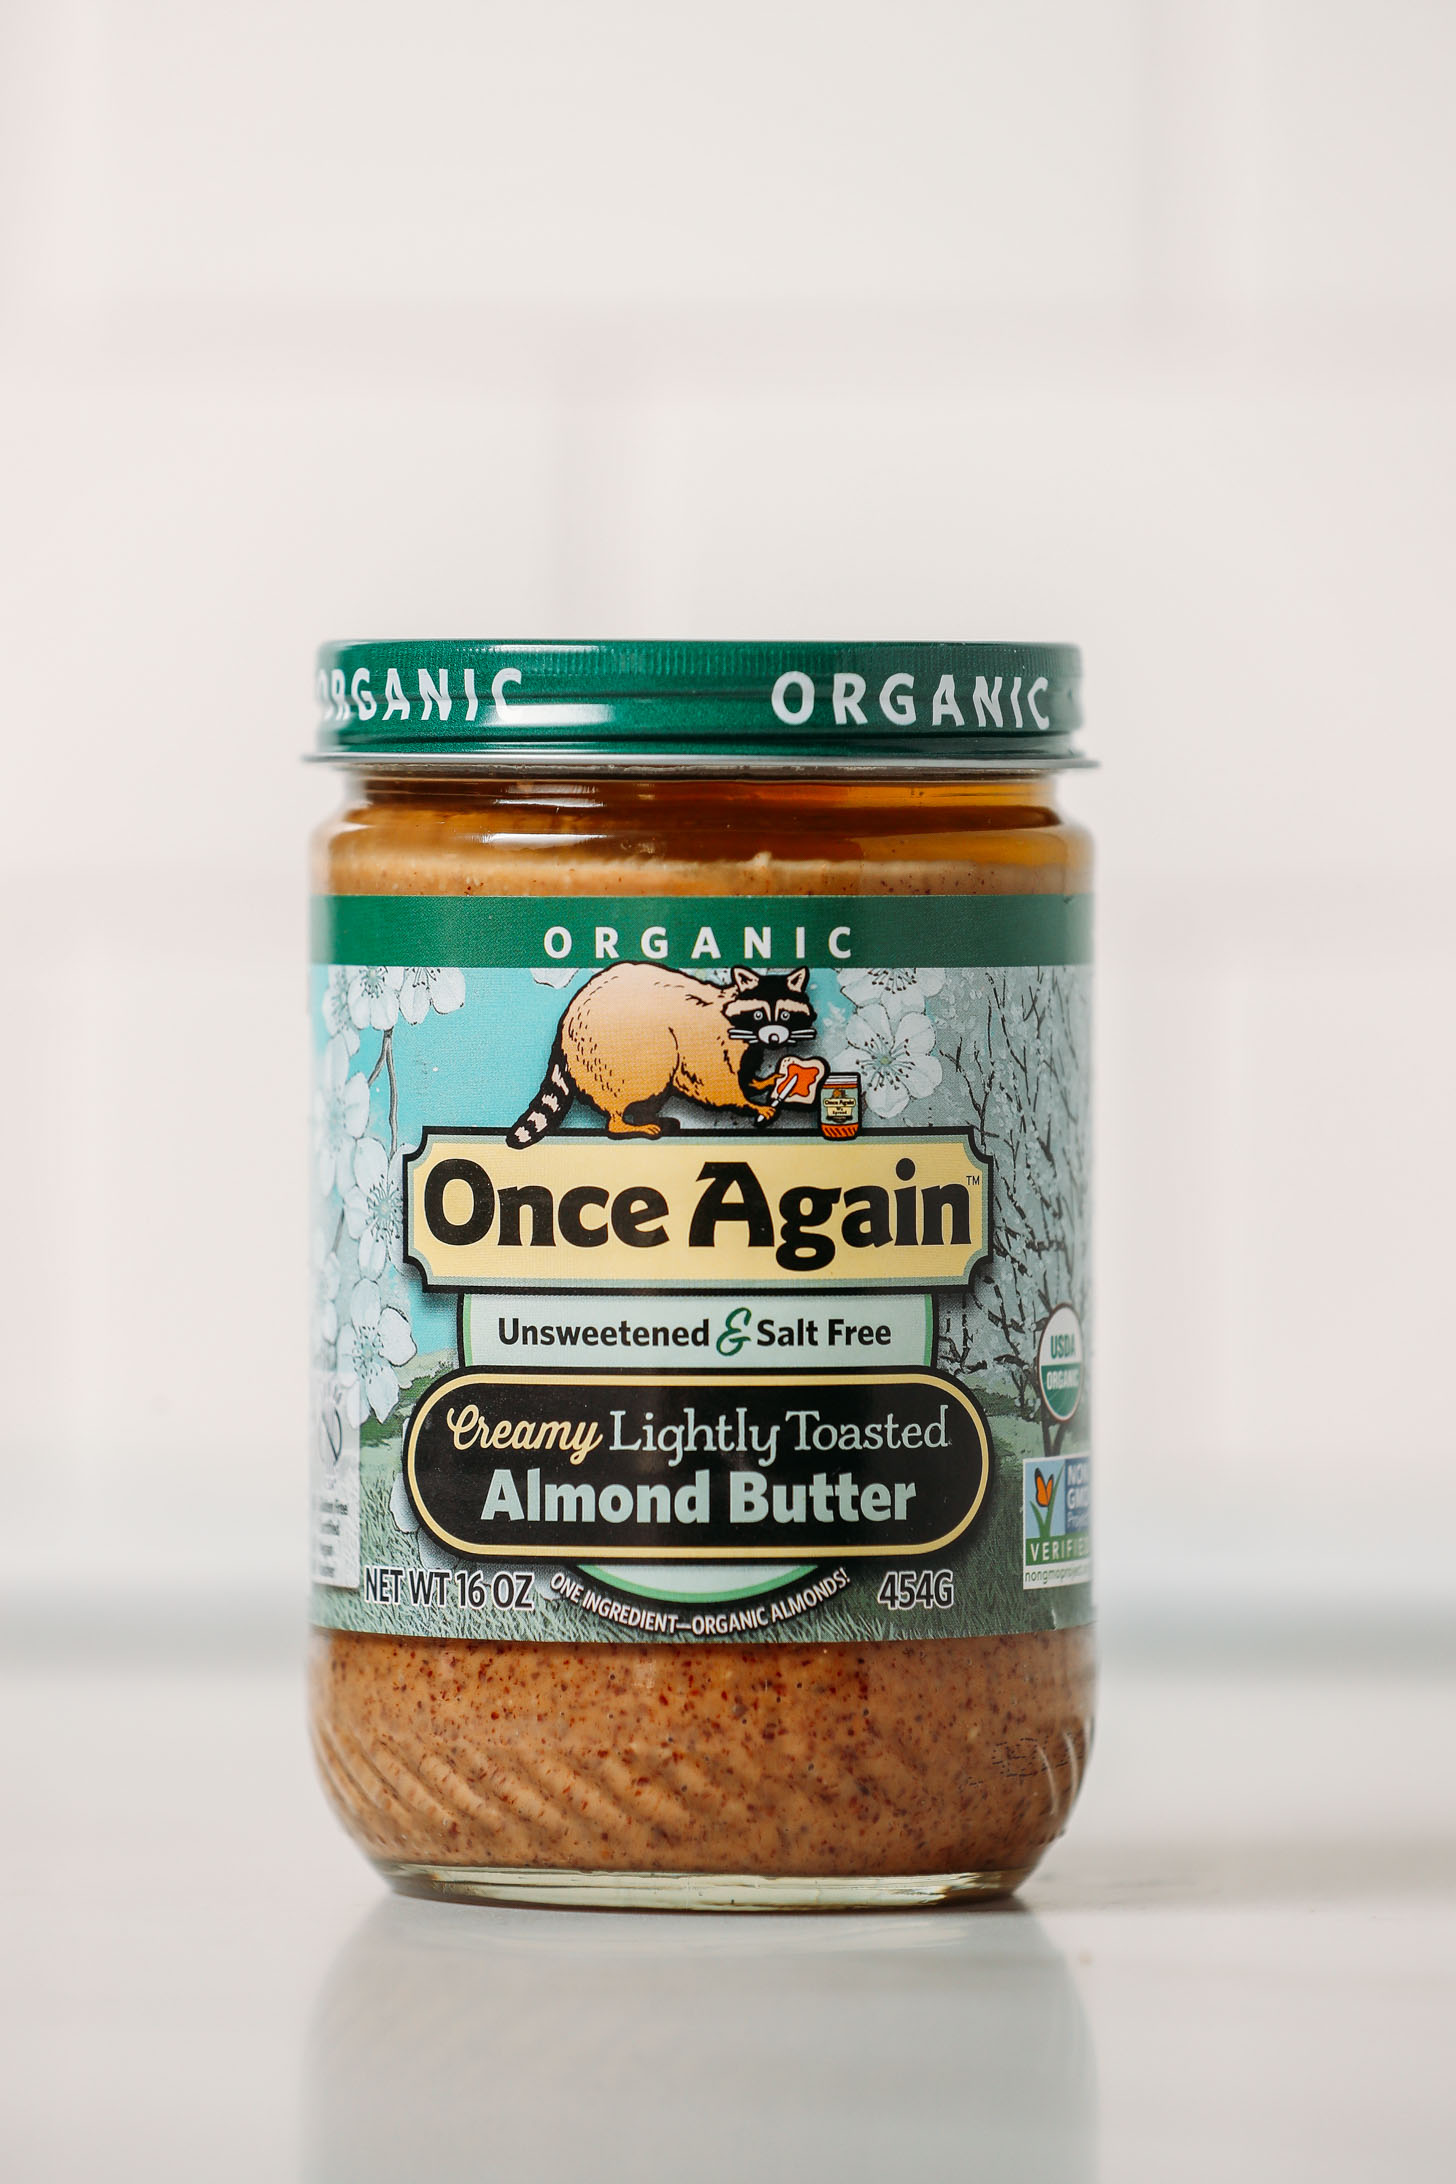 Jar of Once Again Creamy Lightly Toasted Almond Butter for our almond butter review